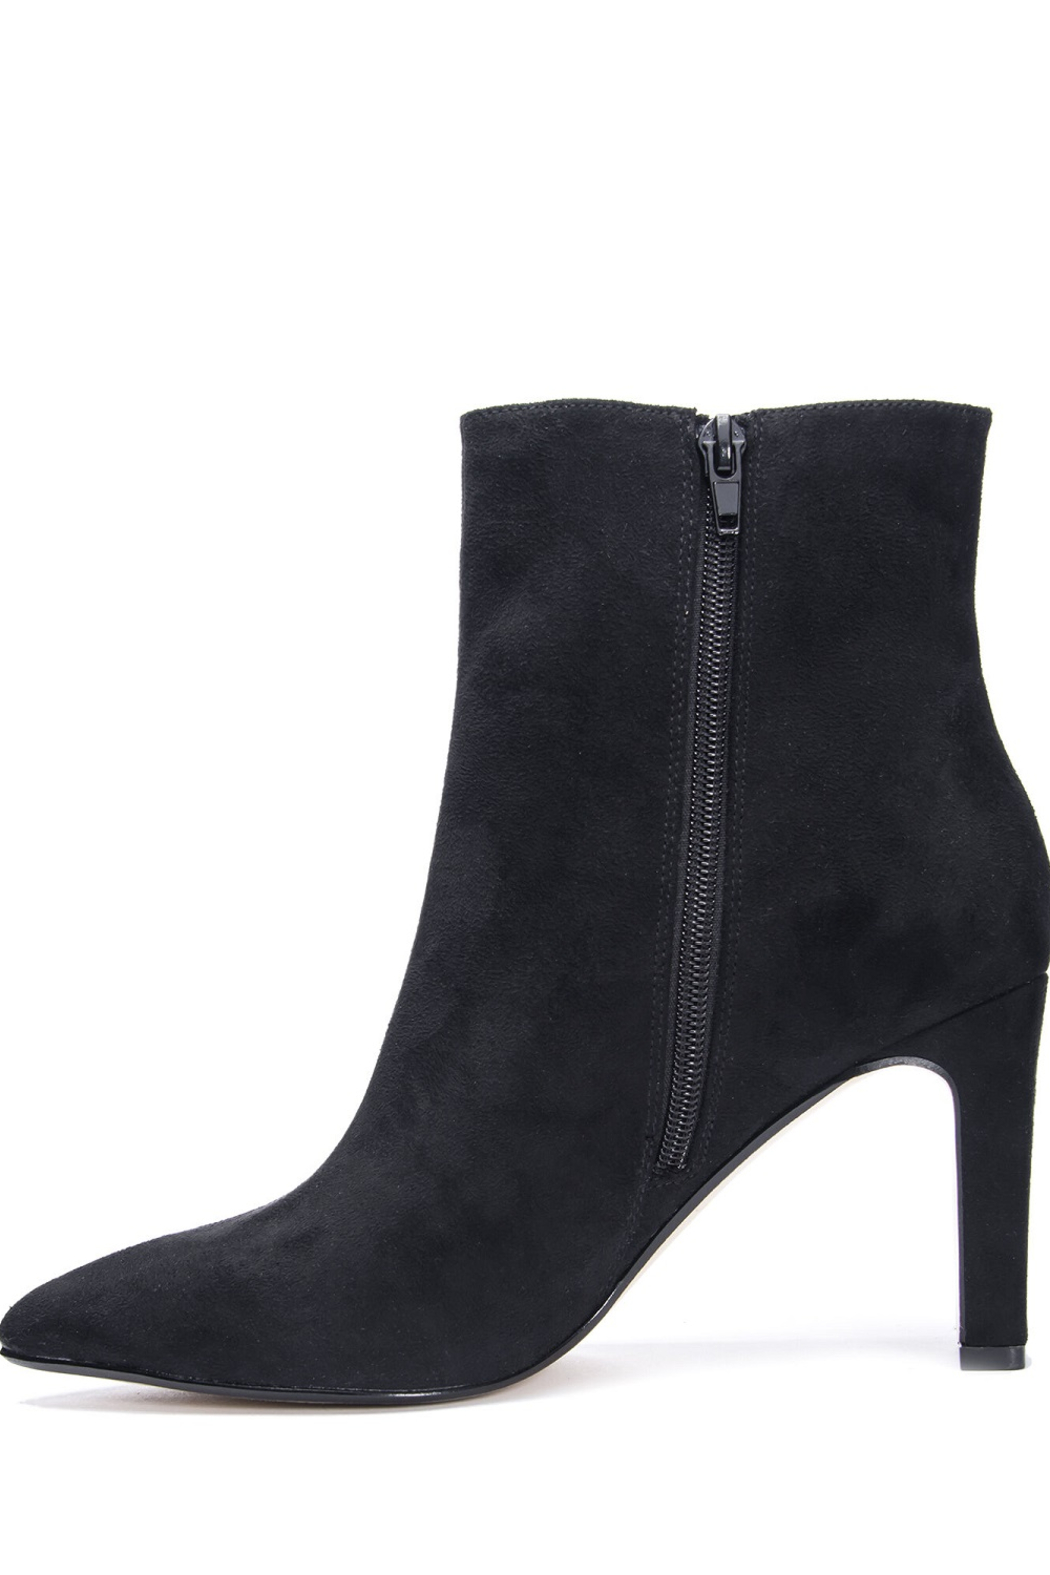 Chinese Laundry Erin Suede Boot - Front Full Image